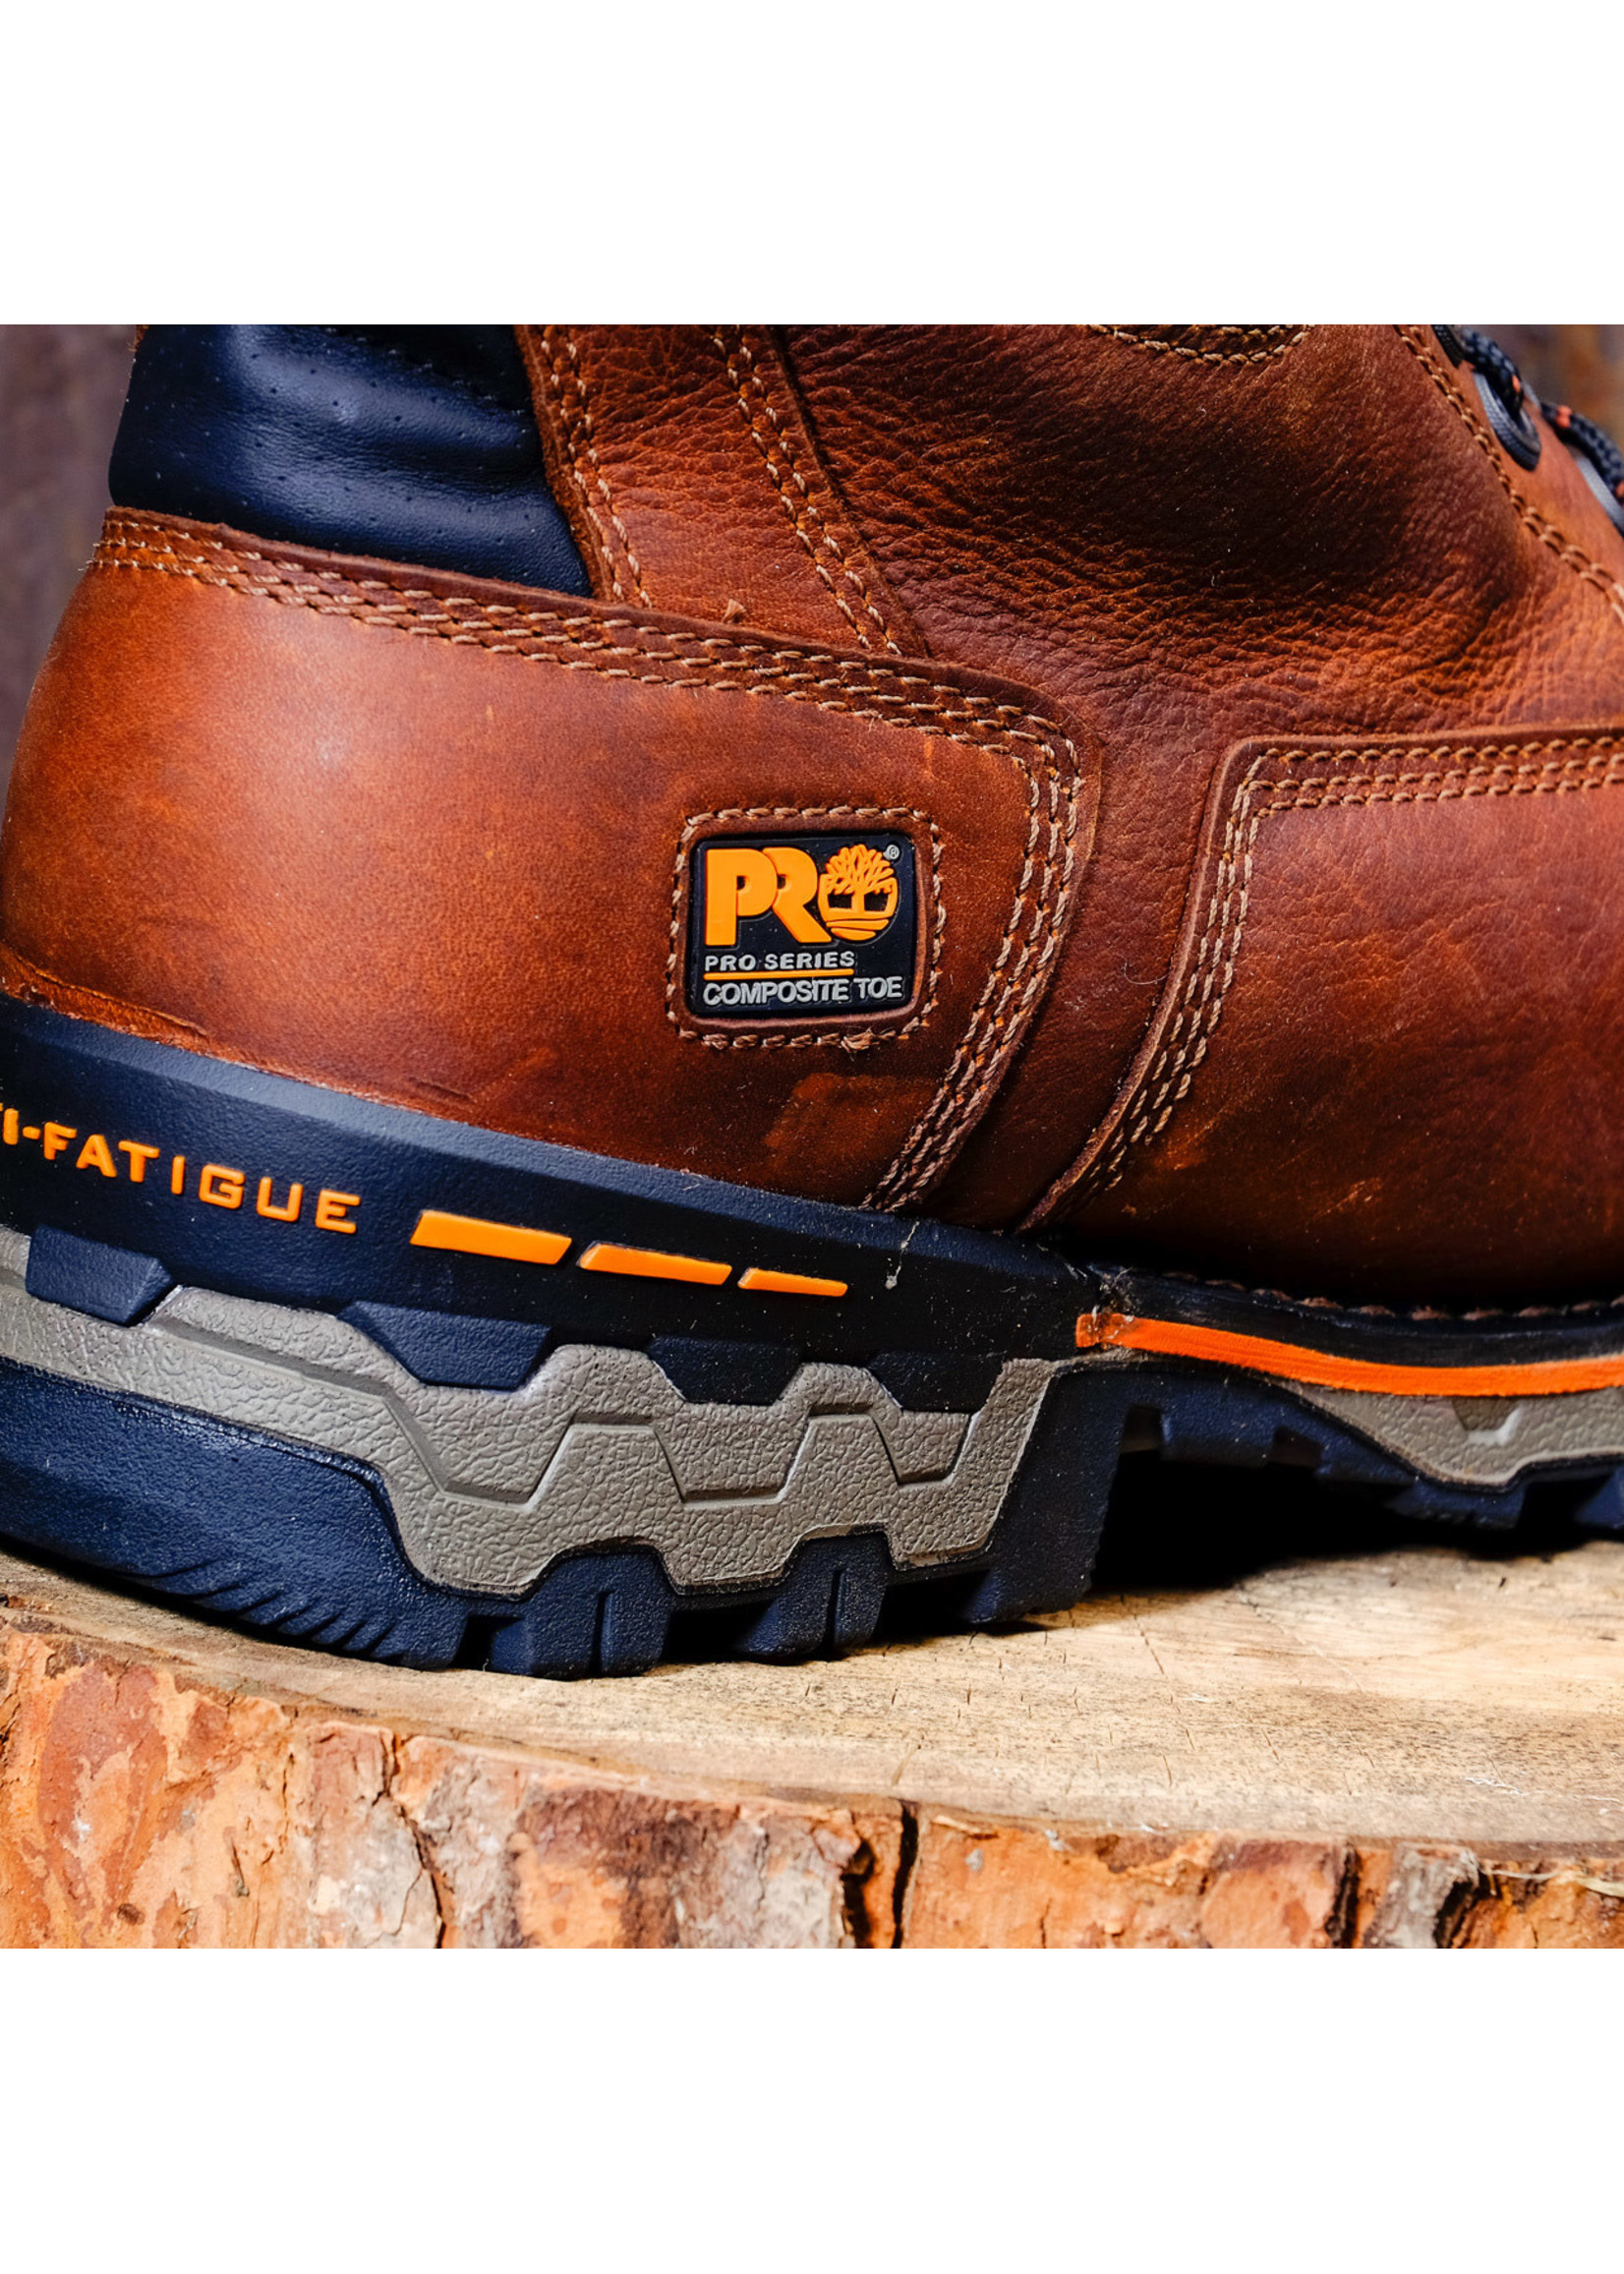 """Timberland Pro Insulated Boondock 8"""" Composite Toe Work Boots 89628"""